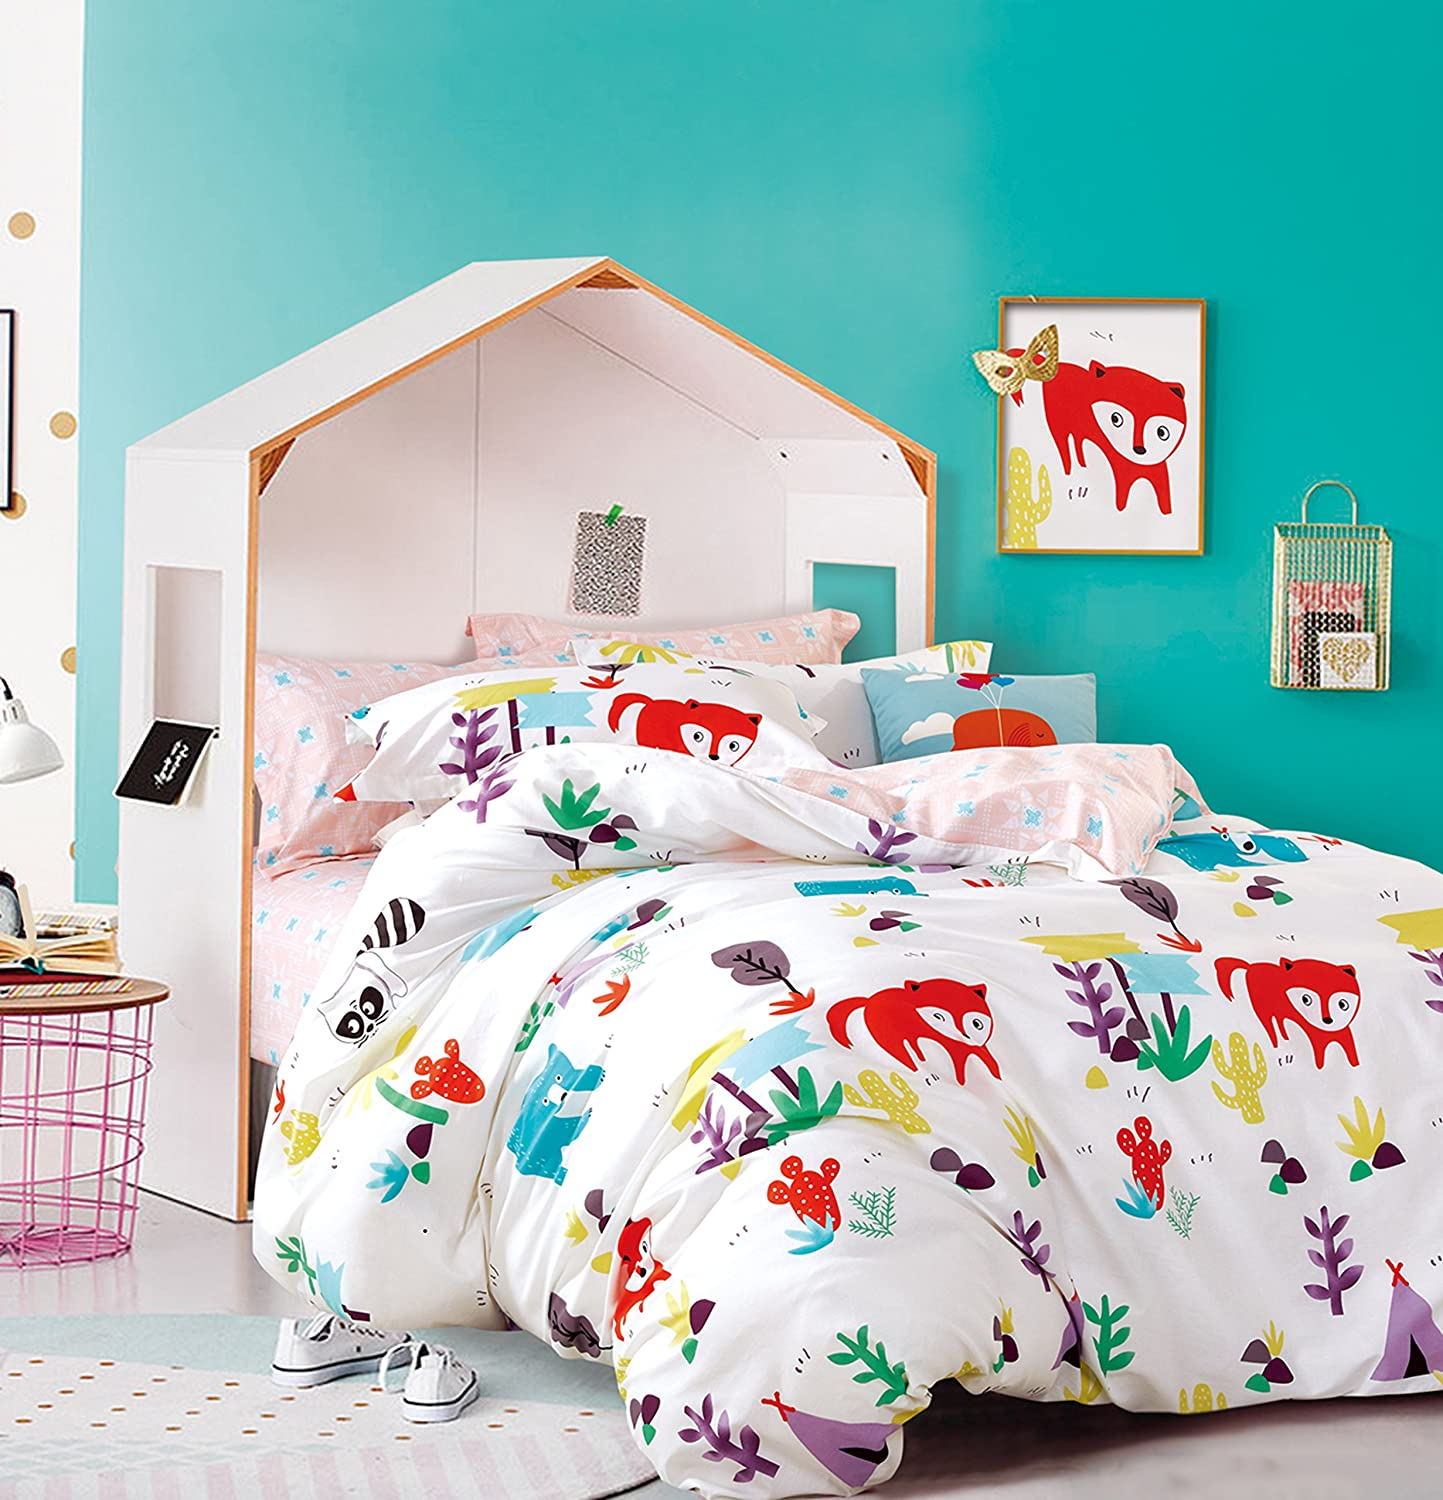 Animal Print Bedding for Kids – Ease Bedding with Style